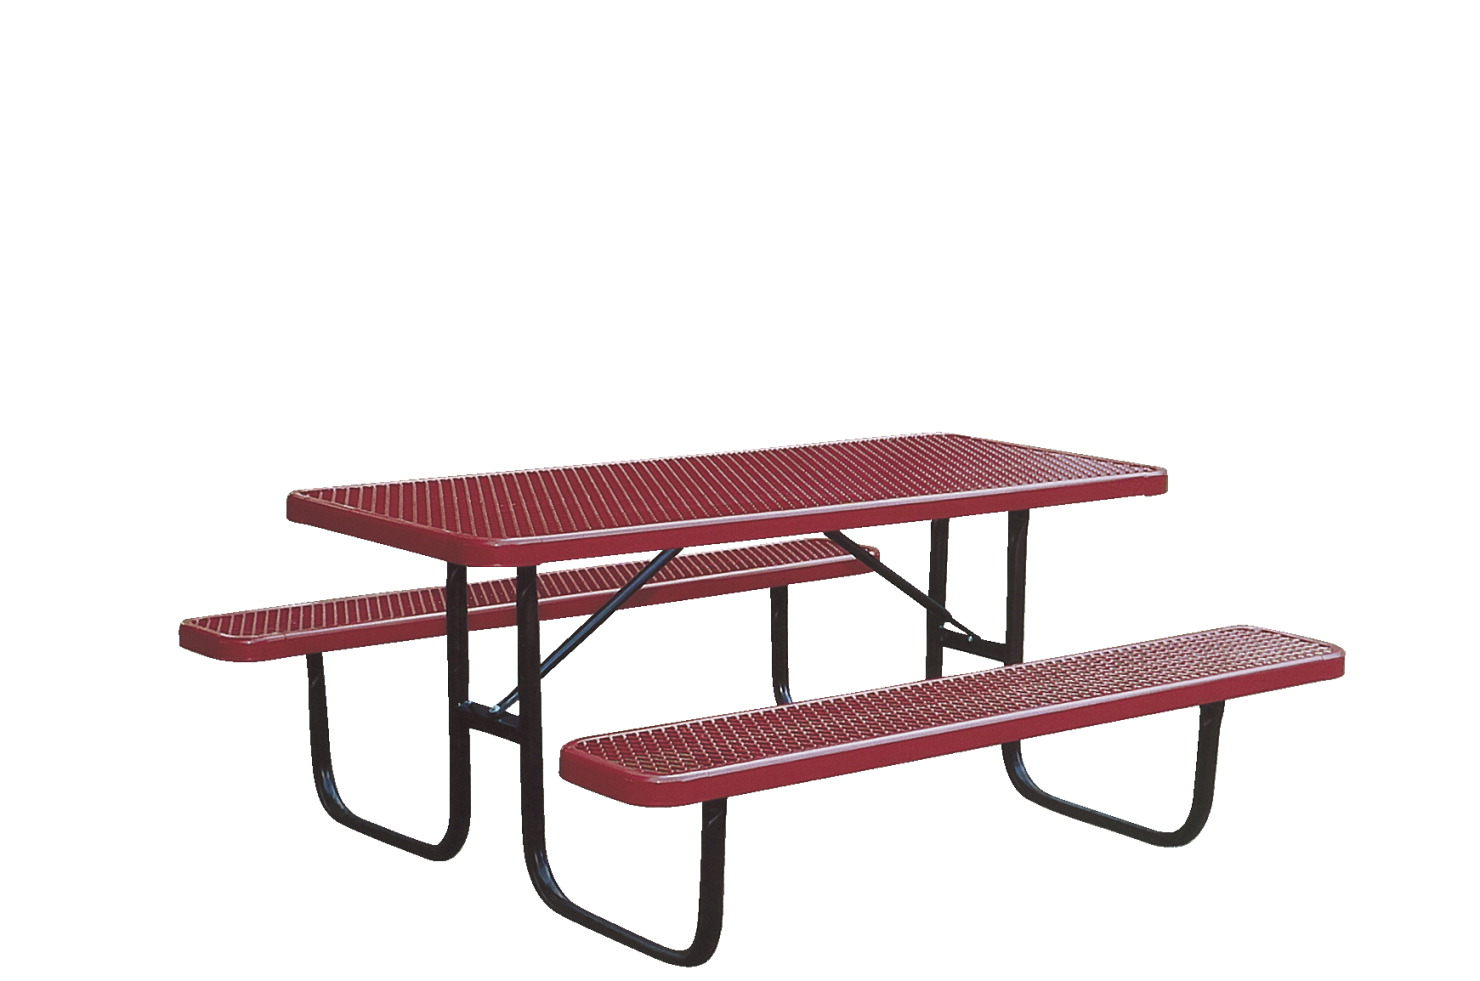 UltraSite UltraCoat Thermoplastic Picnic Table with Benches, 72 x 64 x 30 Inches, Various Options